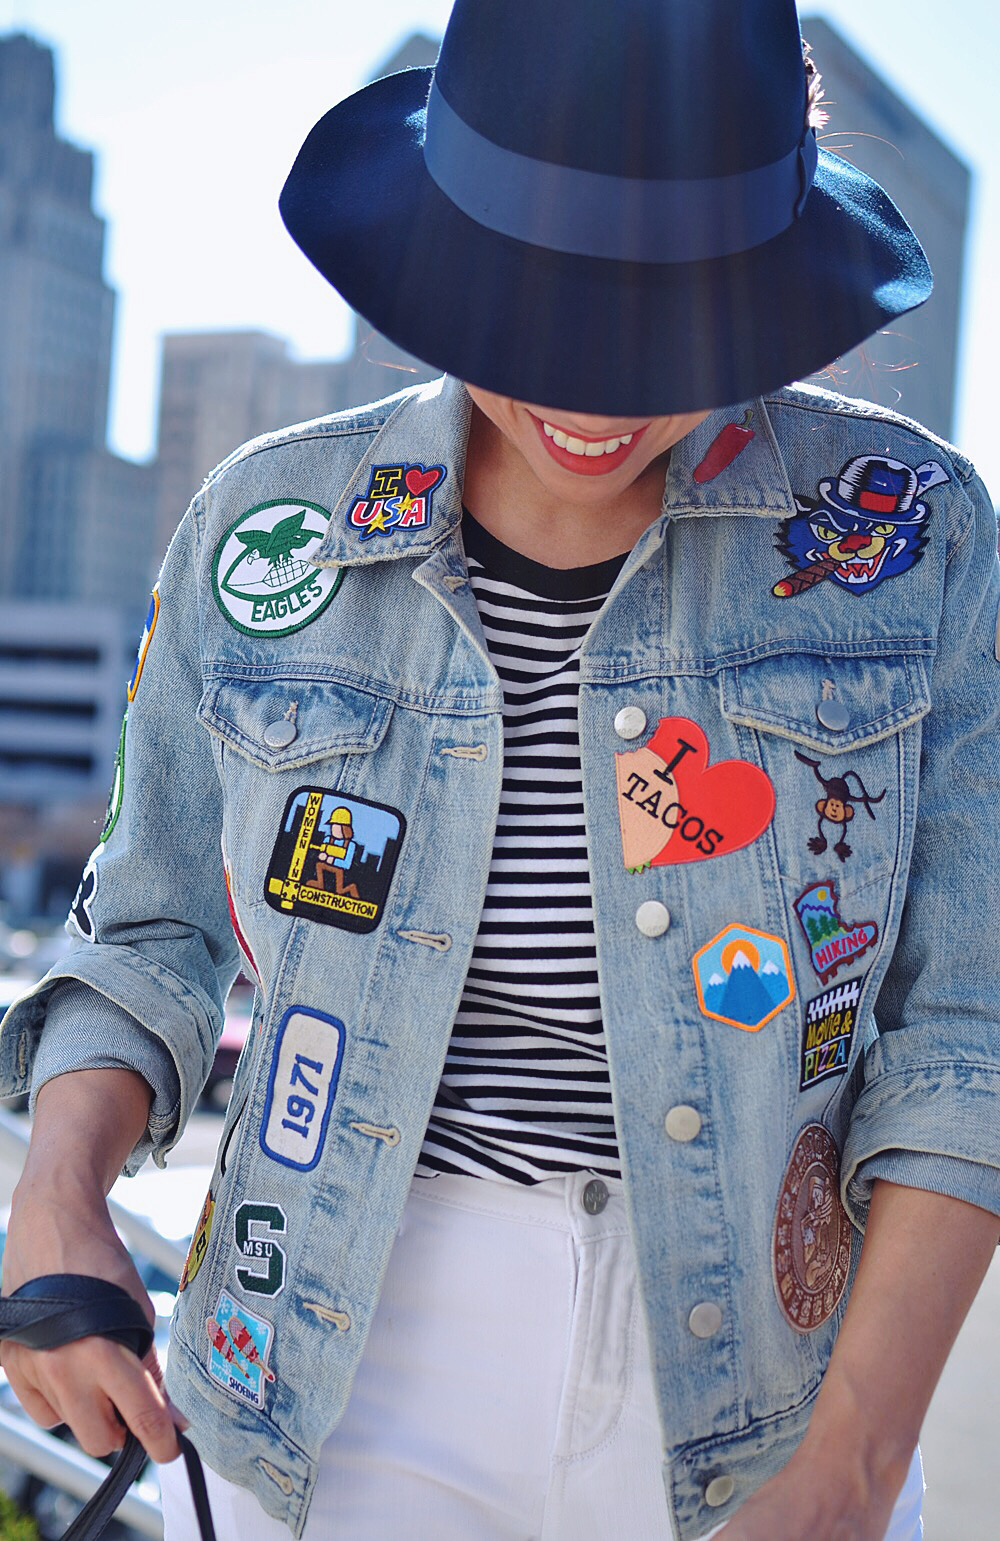 Getting Personal With Patches Denim Jacket Patches Diy Denim Jacket Denim Jacket [ 1541 x 1000 Pixel ]